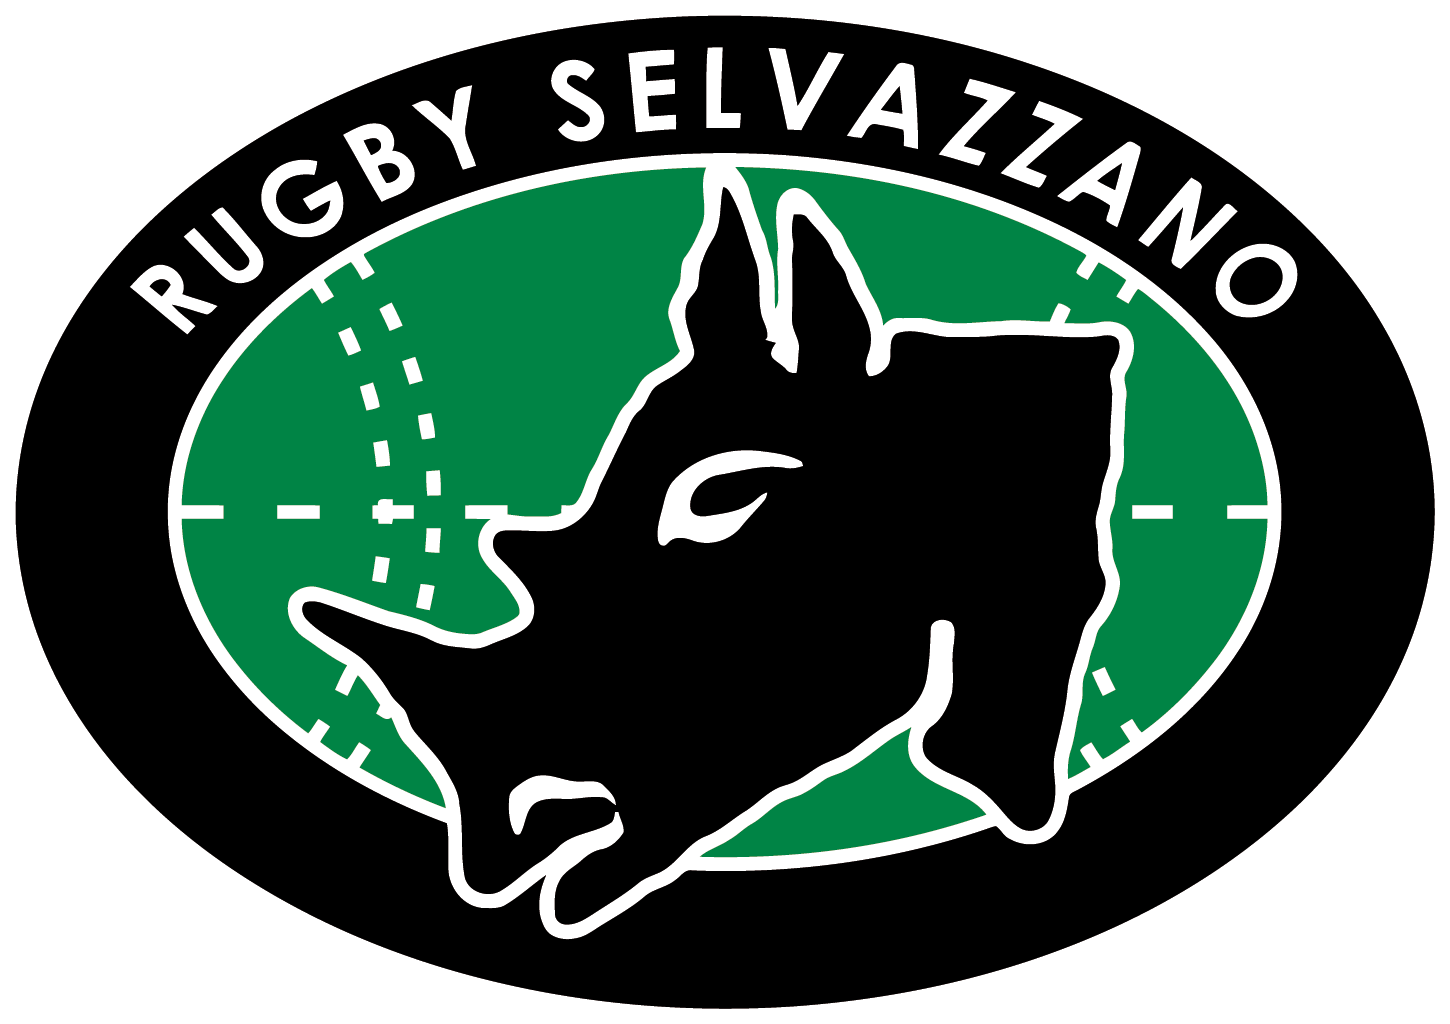 selvazzano rugby